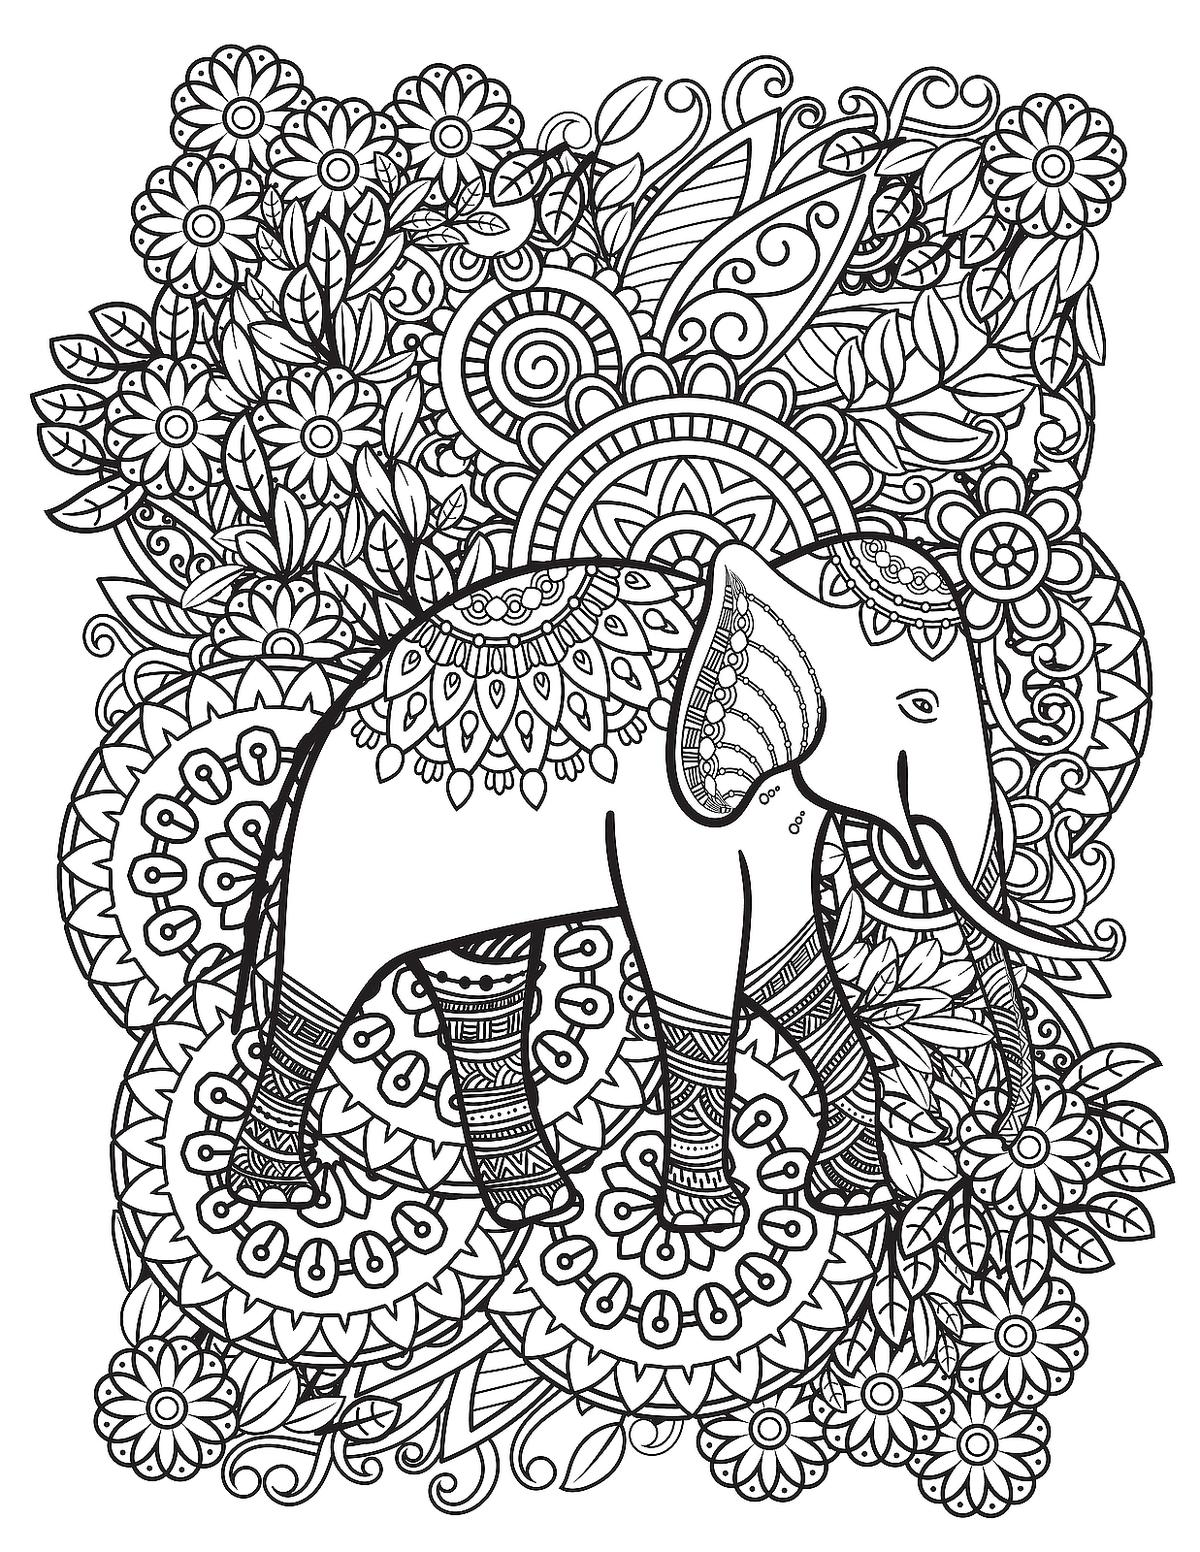 Elephant Coloring Pages 12 Free Fun Printable Elephant Coloring Pages For Kids Adults Printables 30seconds Mom